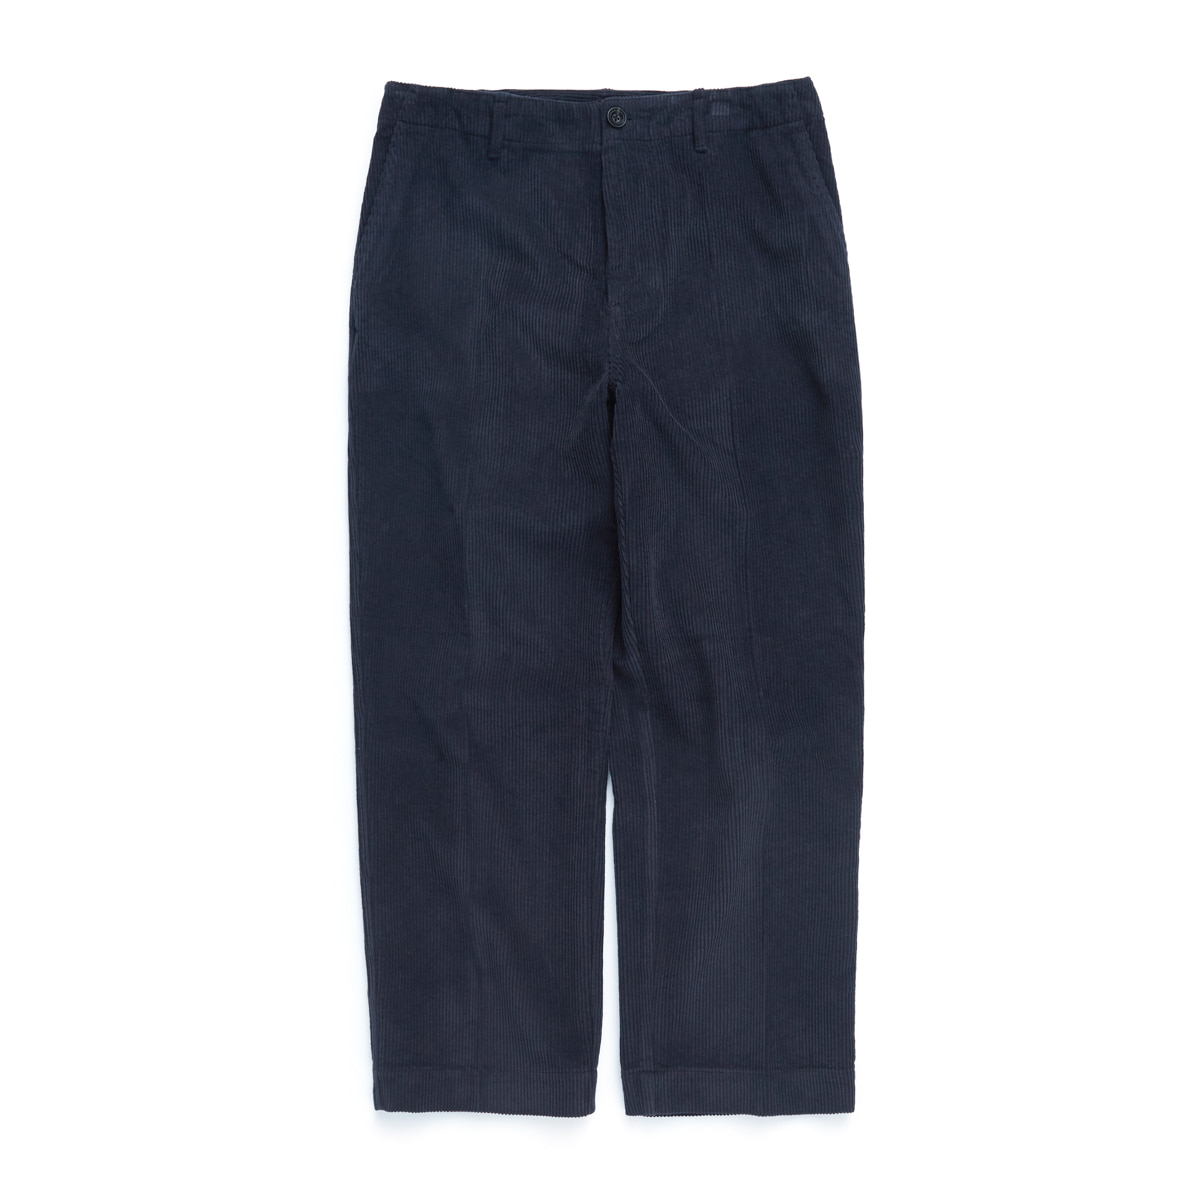 언어펙티드 LOOSE PANTS_Navy corduroy